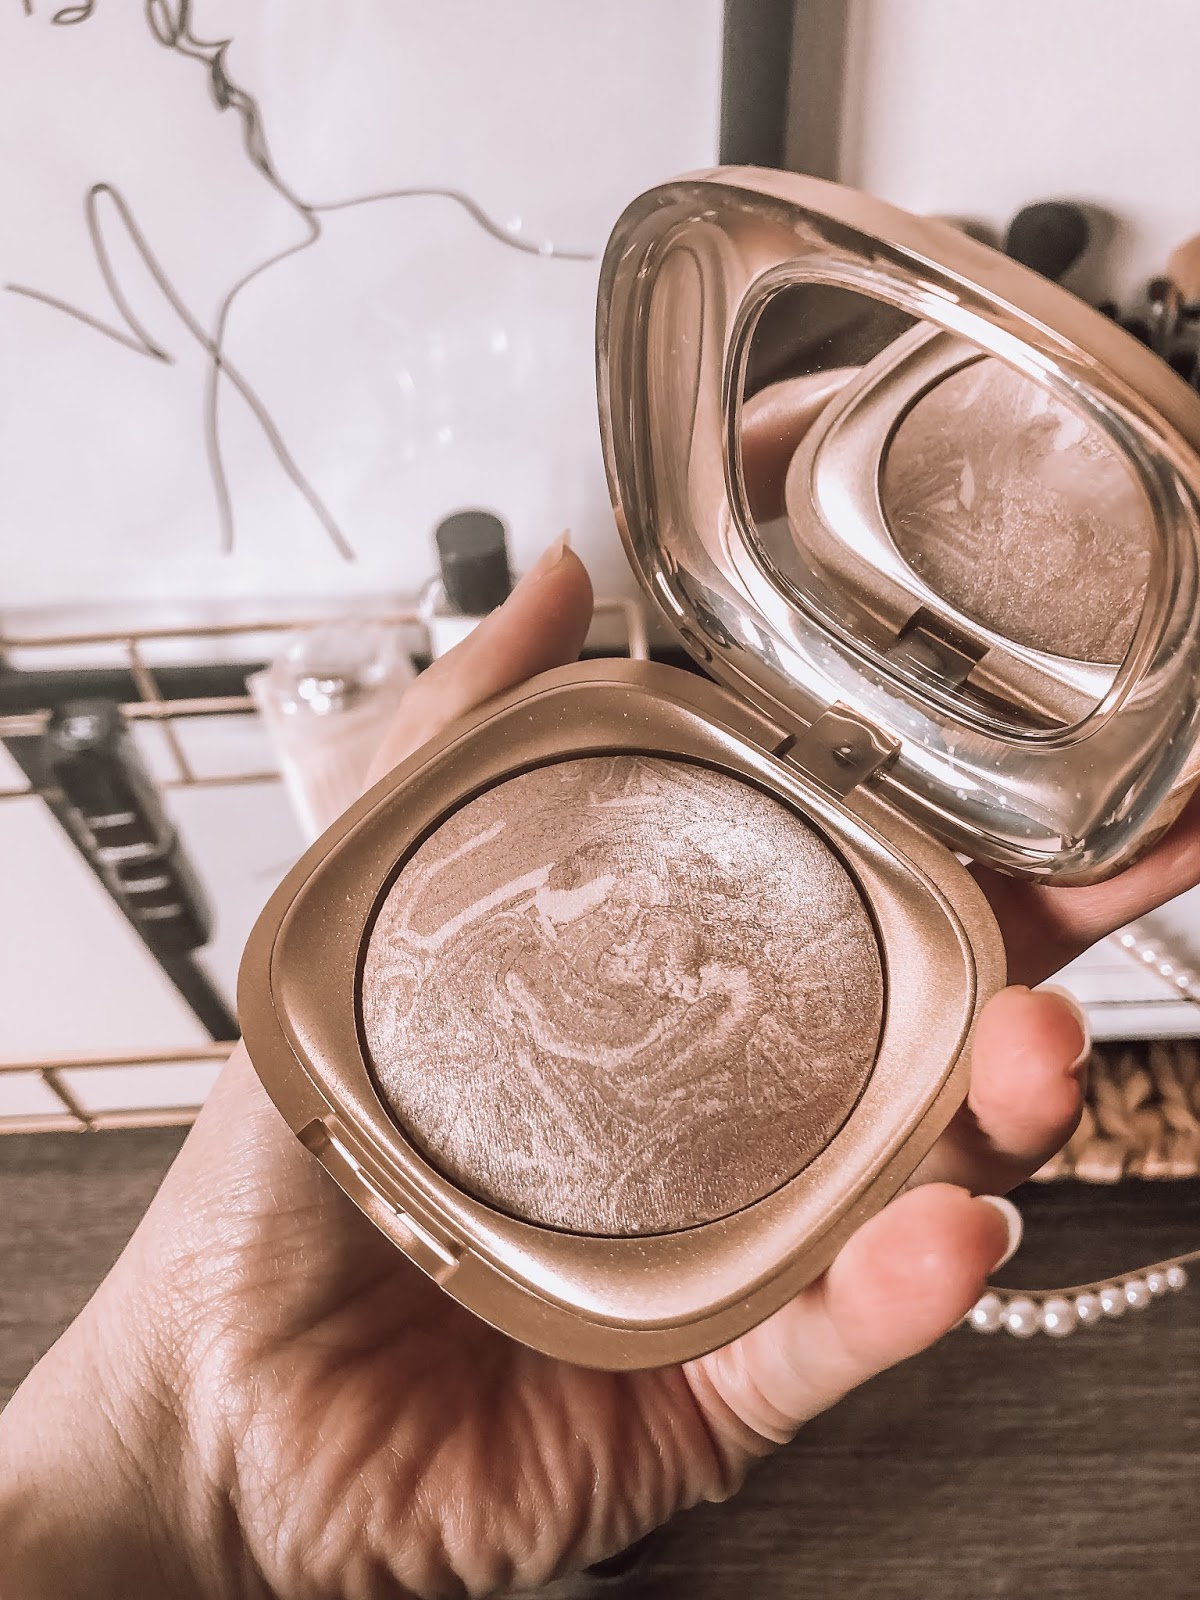 kiko haul favorites, best of kiko, best kiko highlighter